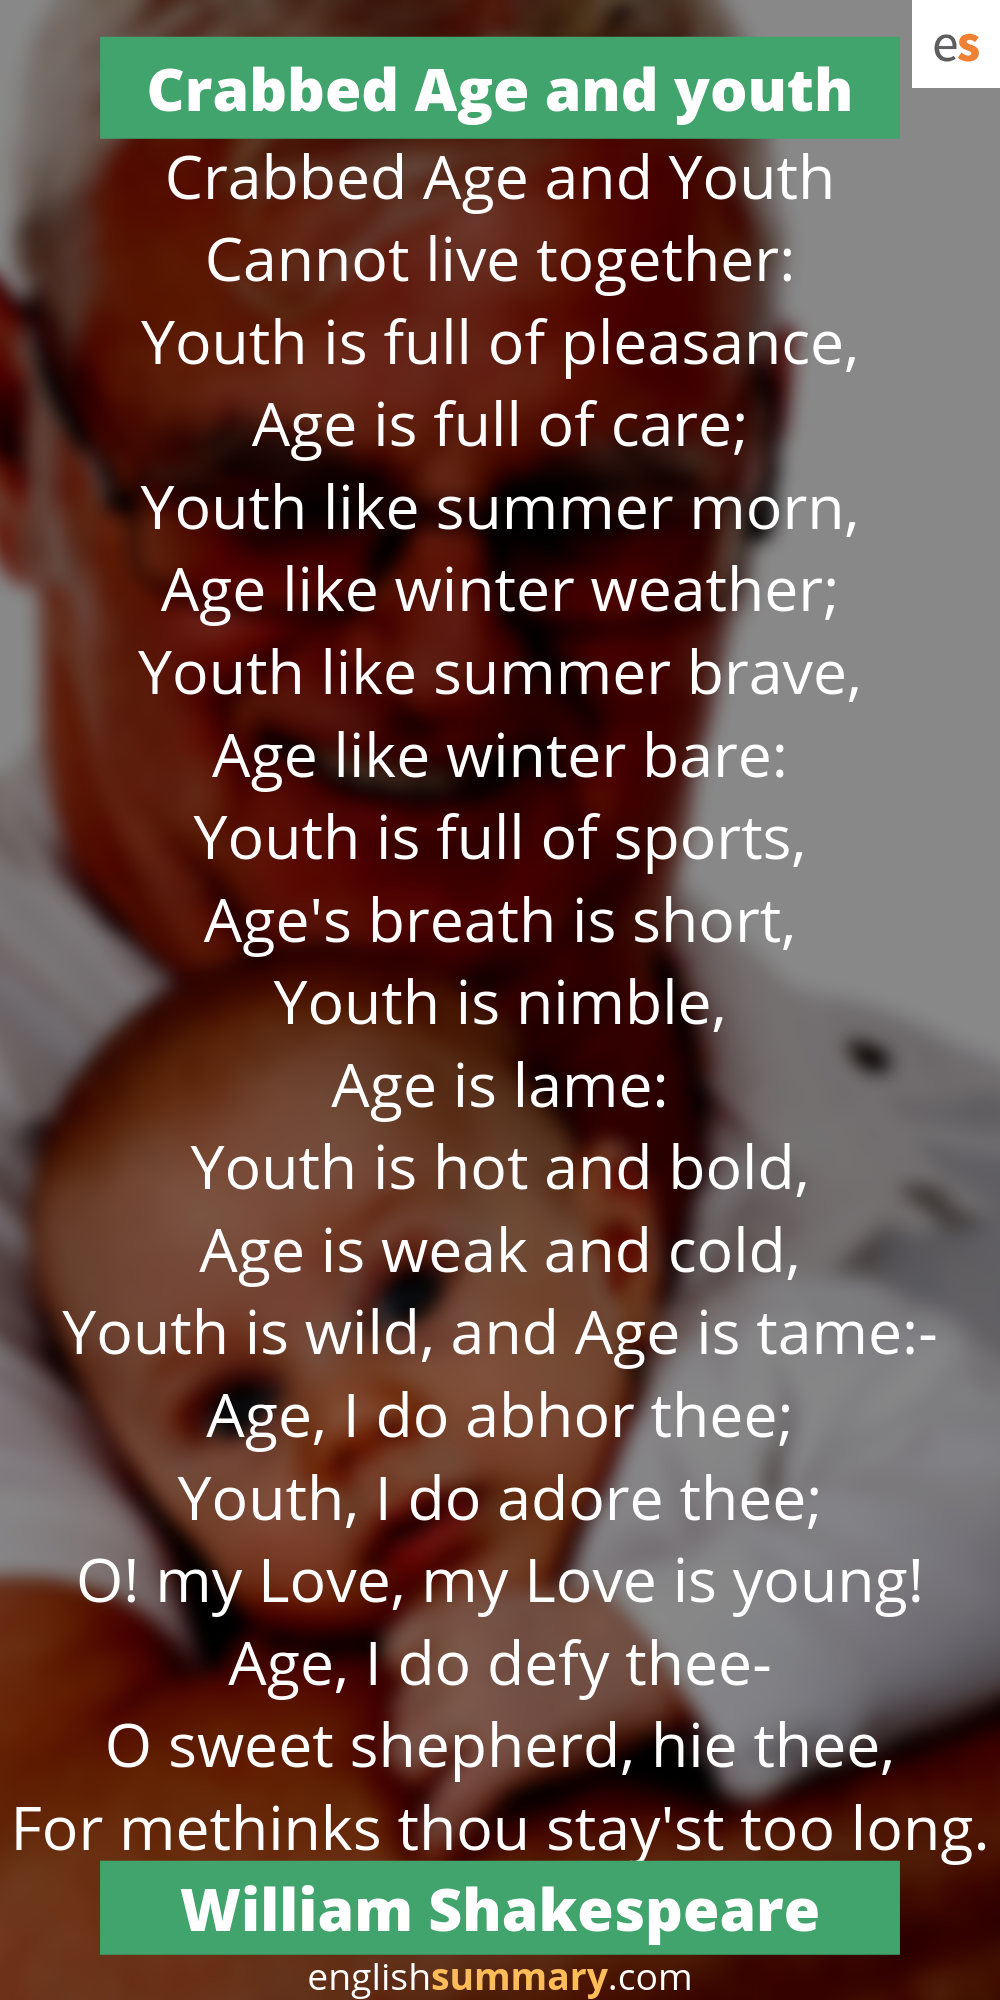 Crabbed Age And Youth Poem By William Shakespeare Poems By William Shakespeare Morning Poem Weather Poetry